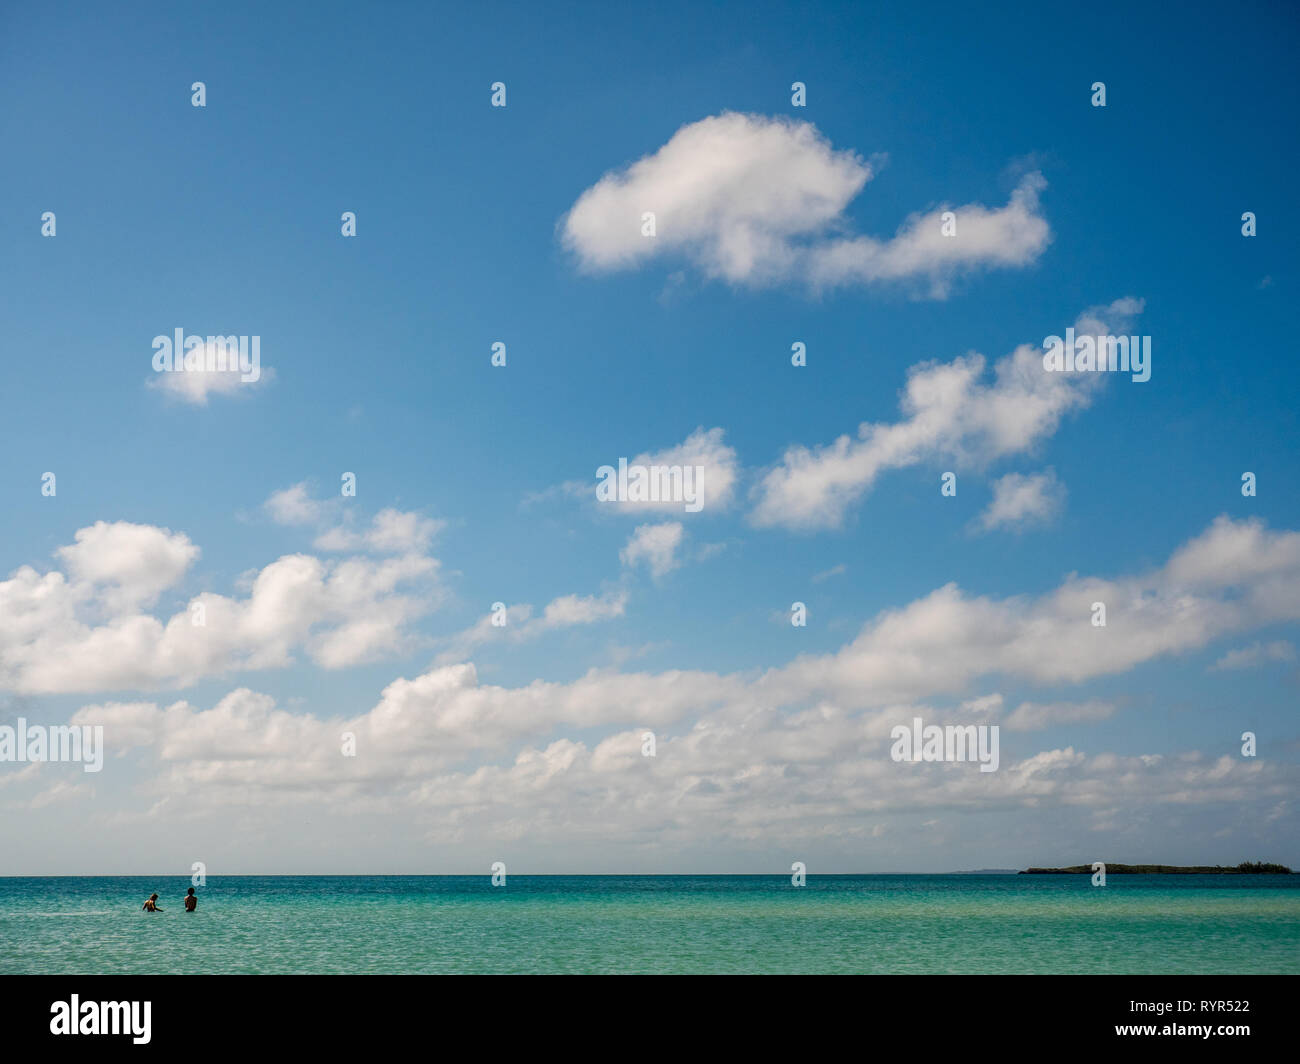 People Walking in Endless Caribbean Sea, Cocodimama Charming Resort, Governors Harbour, Eleuthera, The Bahamas, The Caribbean. - Stock Image